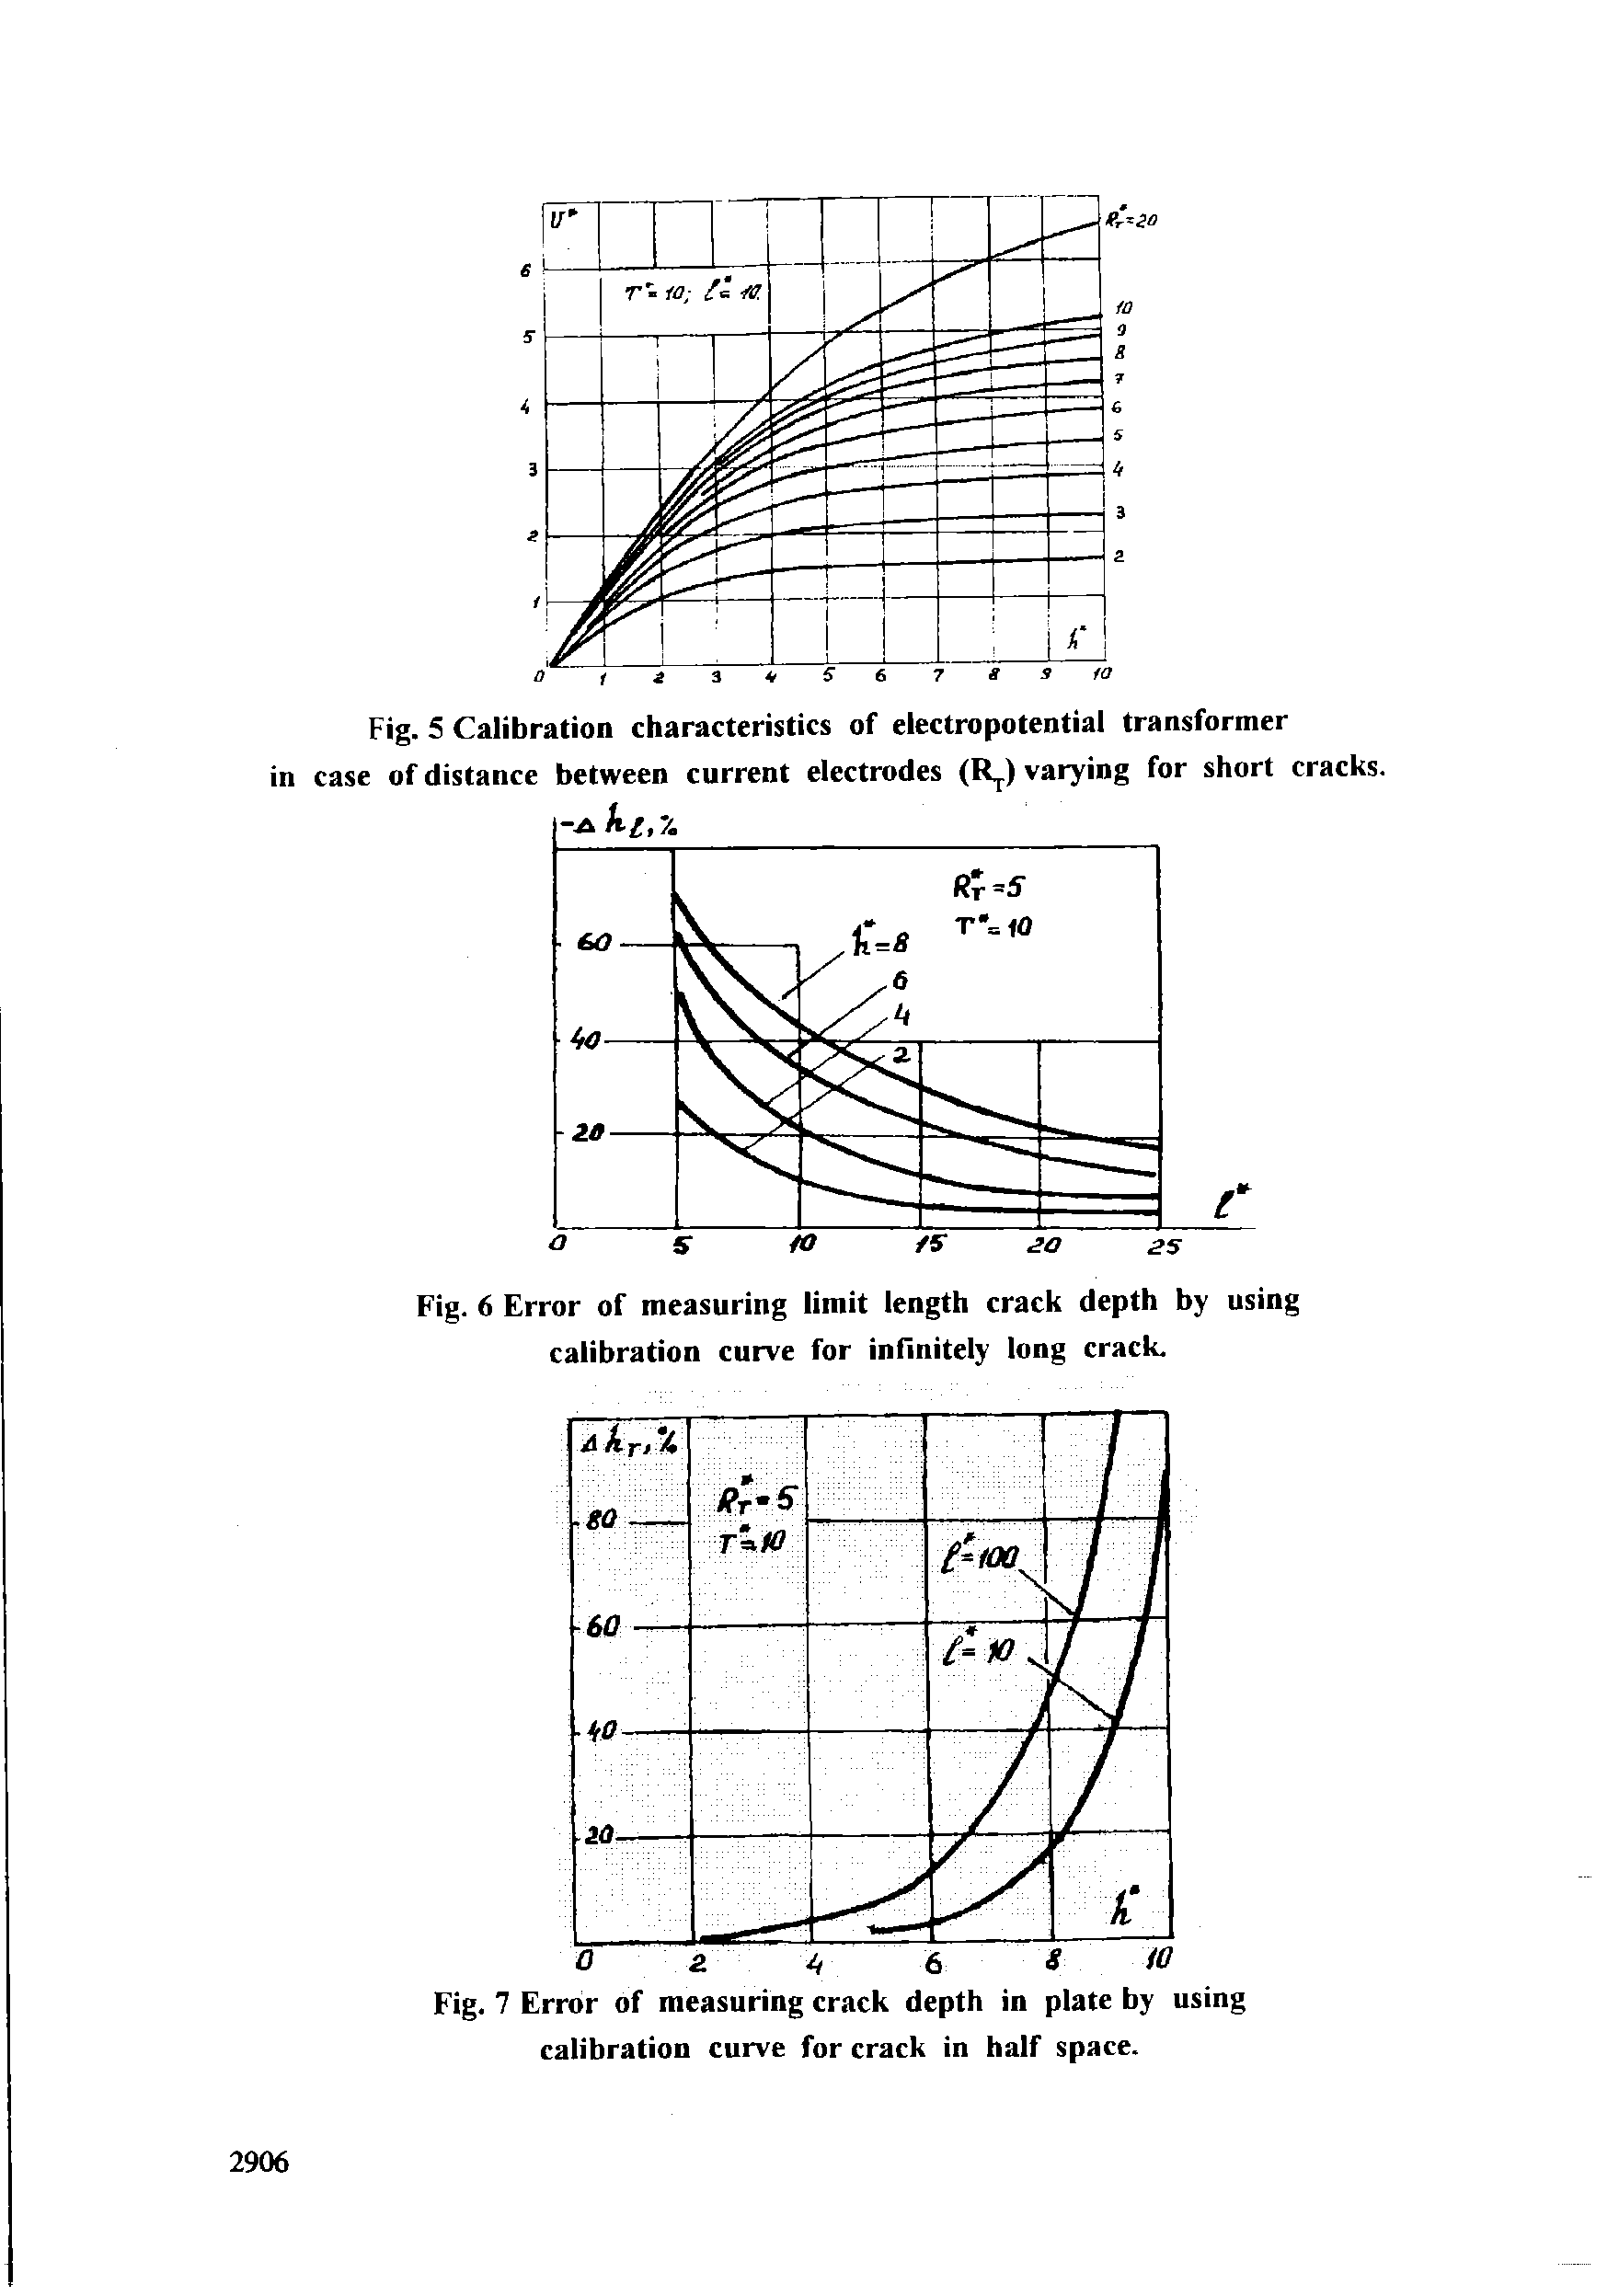 Fig. 6 Error of measuring limit length crack depth by using calibration curve for infinitely long crack.